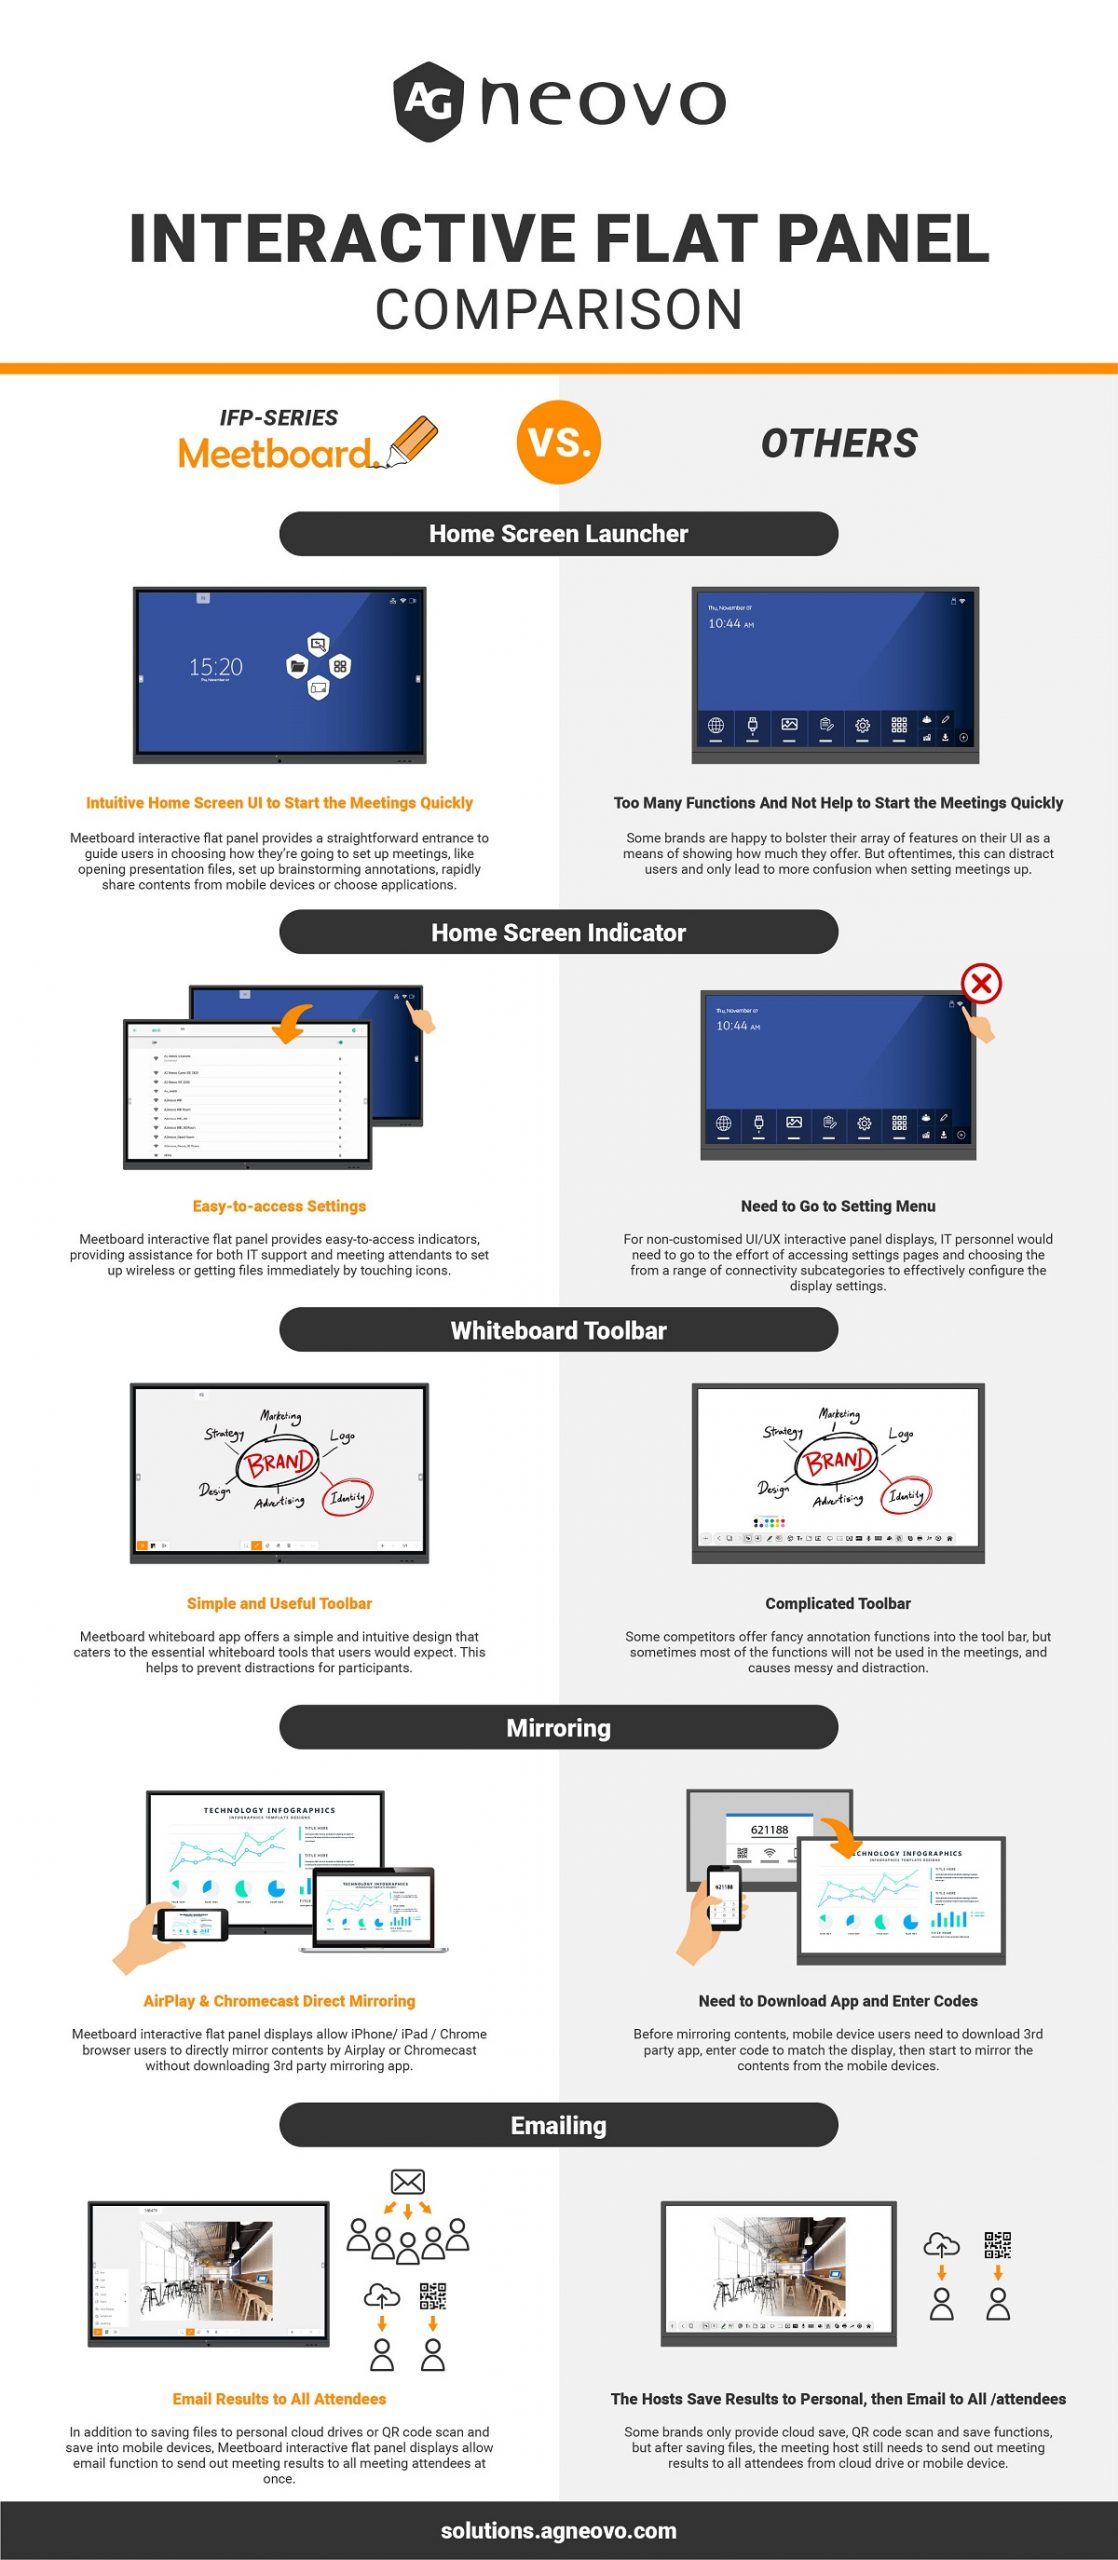 Interactive Flat Panel Comparison_Meetboard vs. Others_Infographic